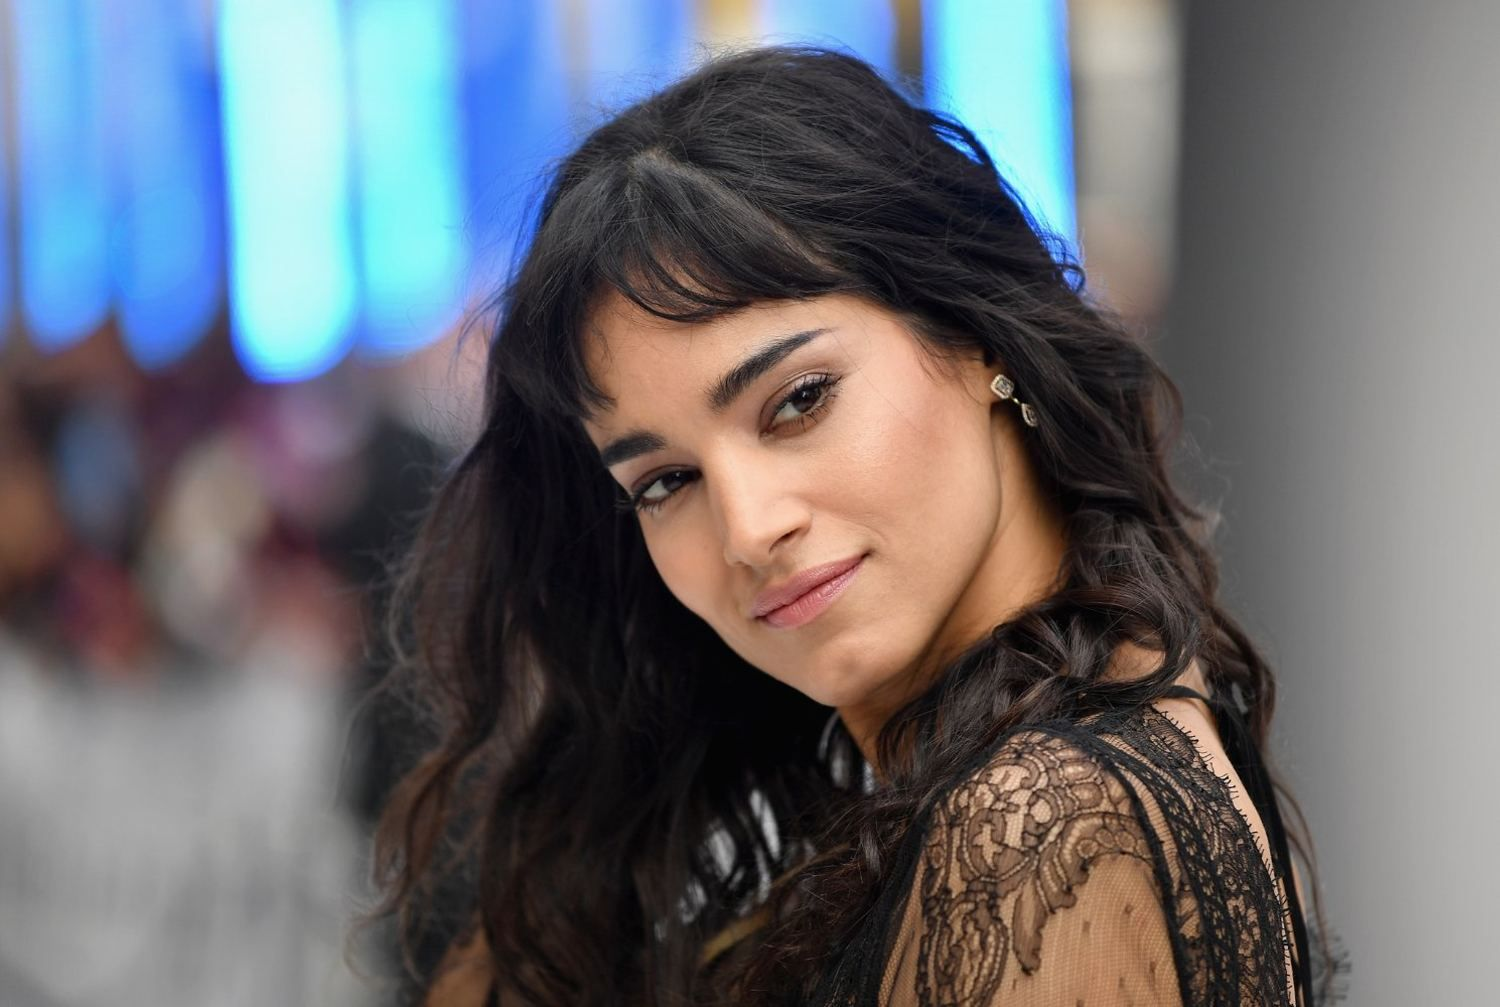 sofia boutella wallpaper photos 61107